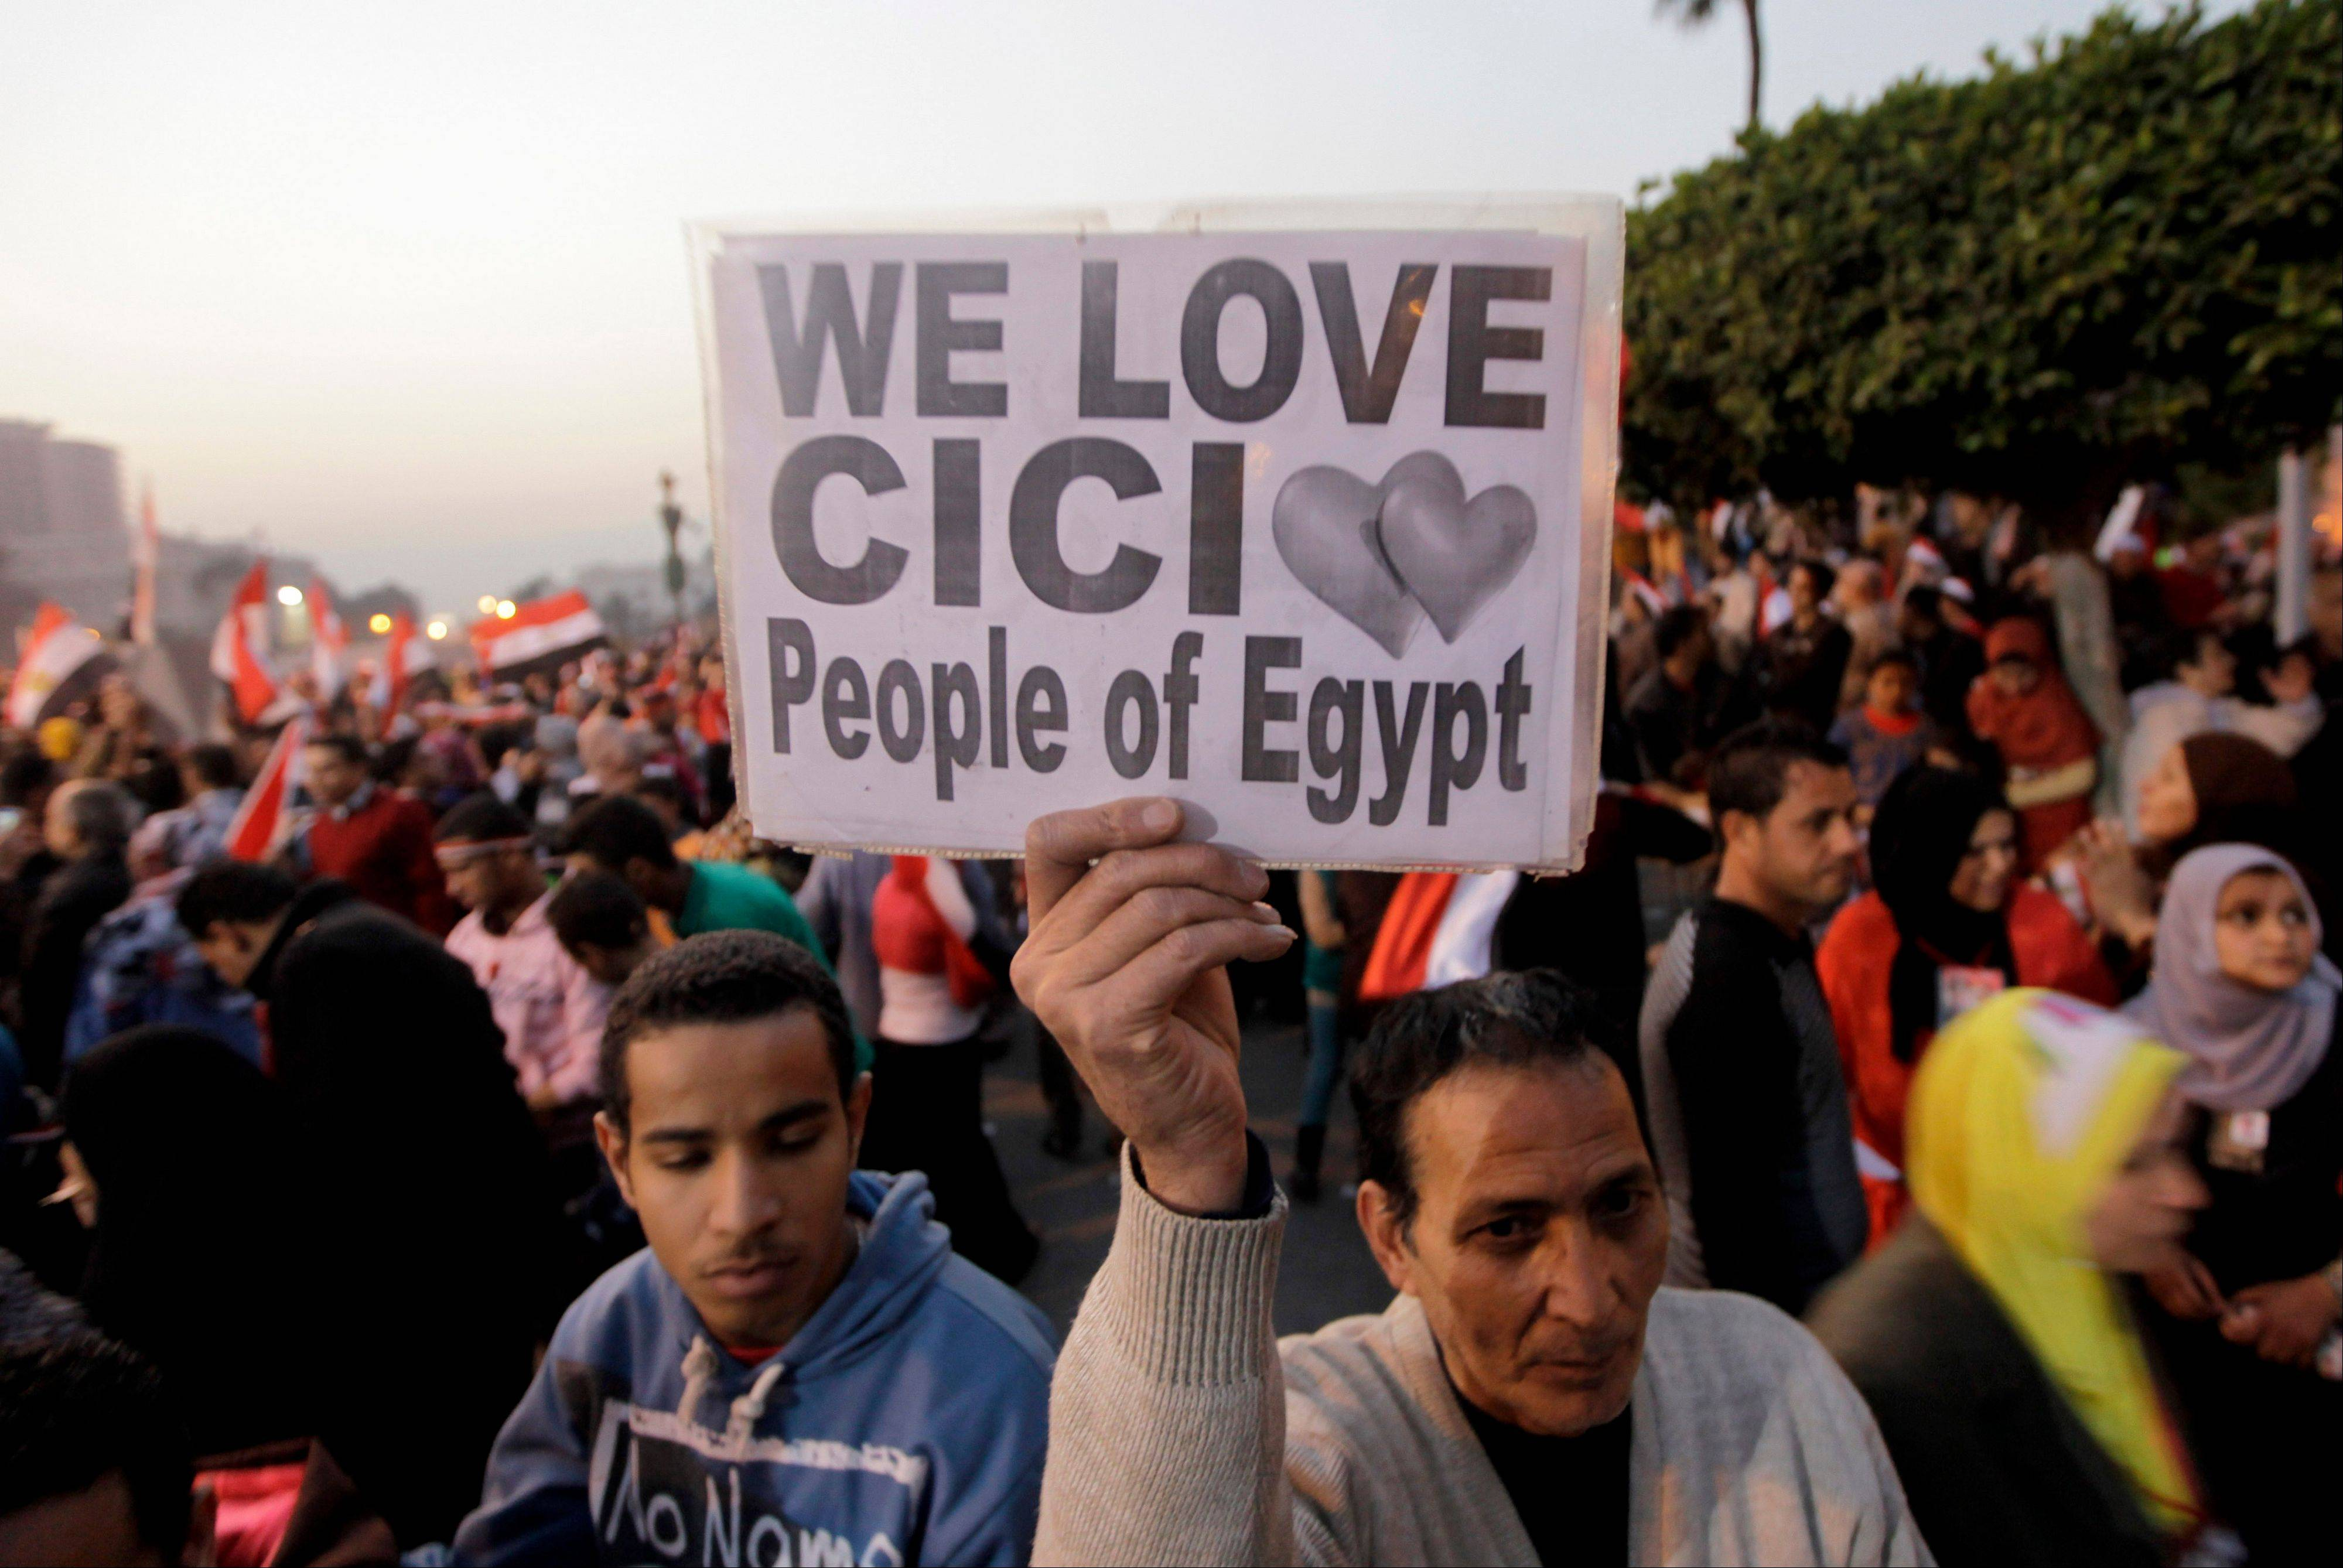 An Egyptian raises a placard Saturday supporting Egypt�s Defense Minister, Gen. Abdel-Fattah el-Sissi in Tahrir Square, the epicenter of the 2011 uprising, in Cairo, Egypt.